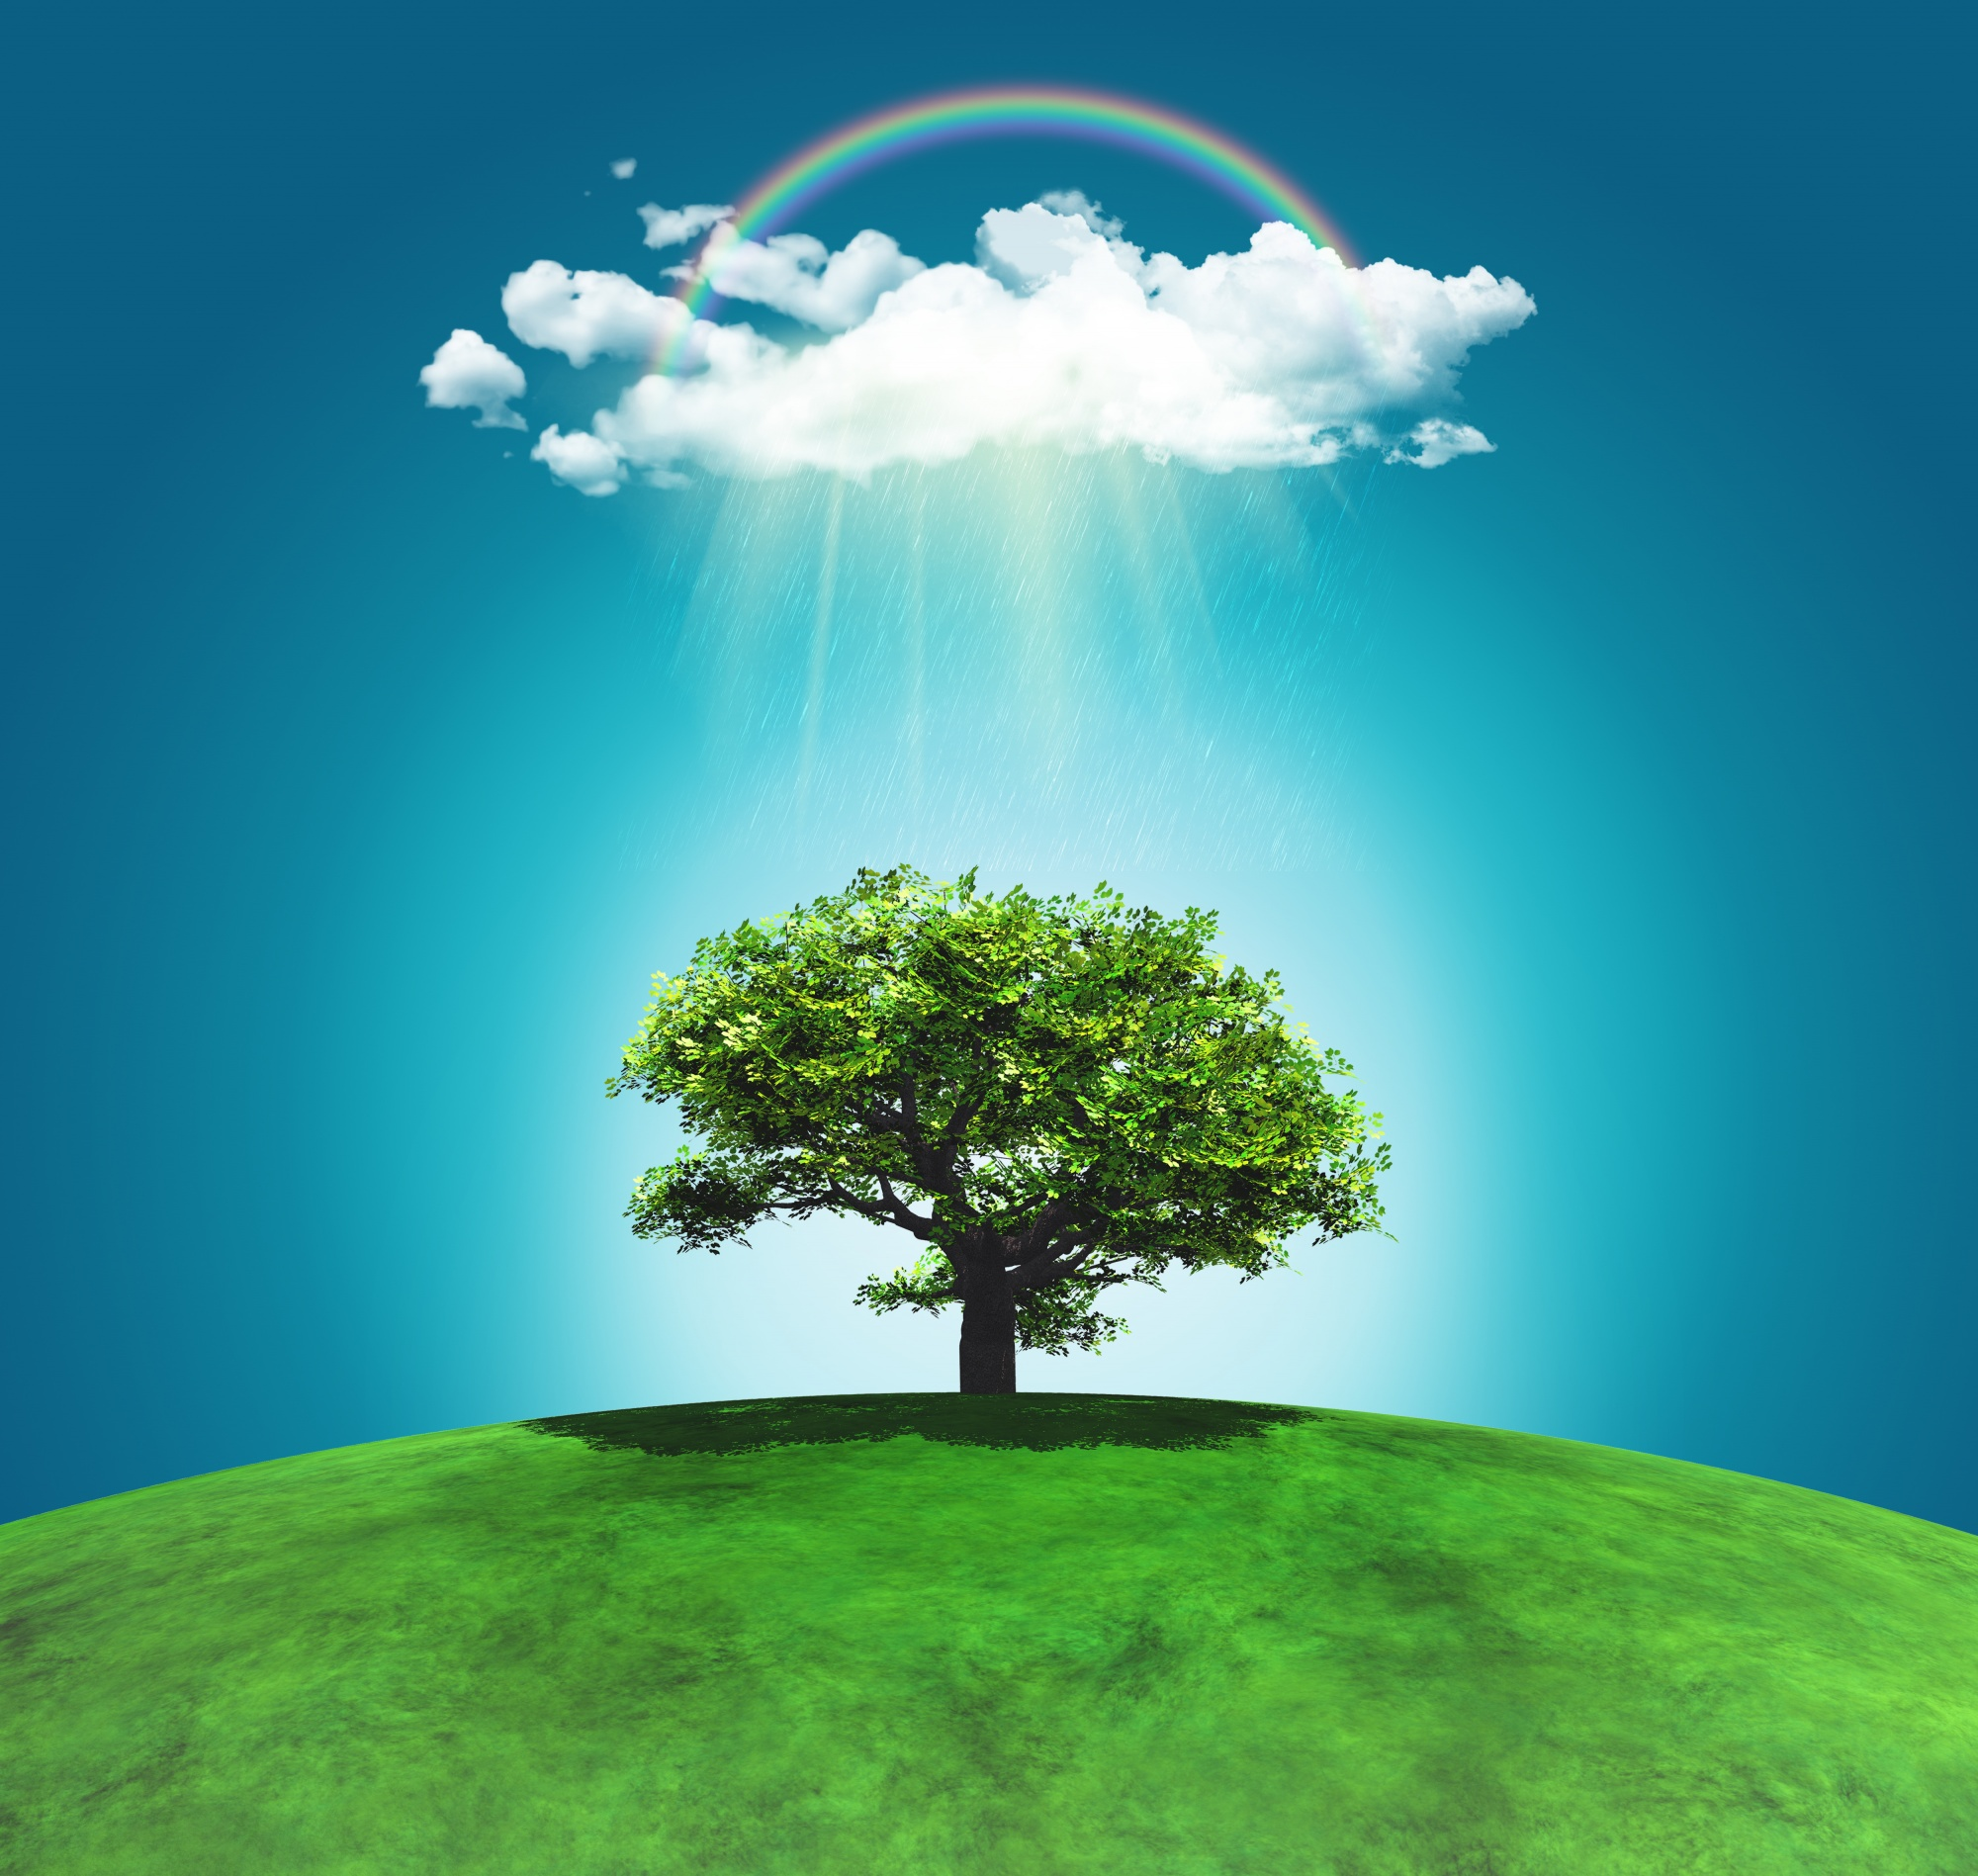 Grassy landscape with a tree and raincloud